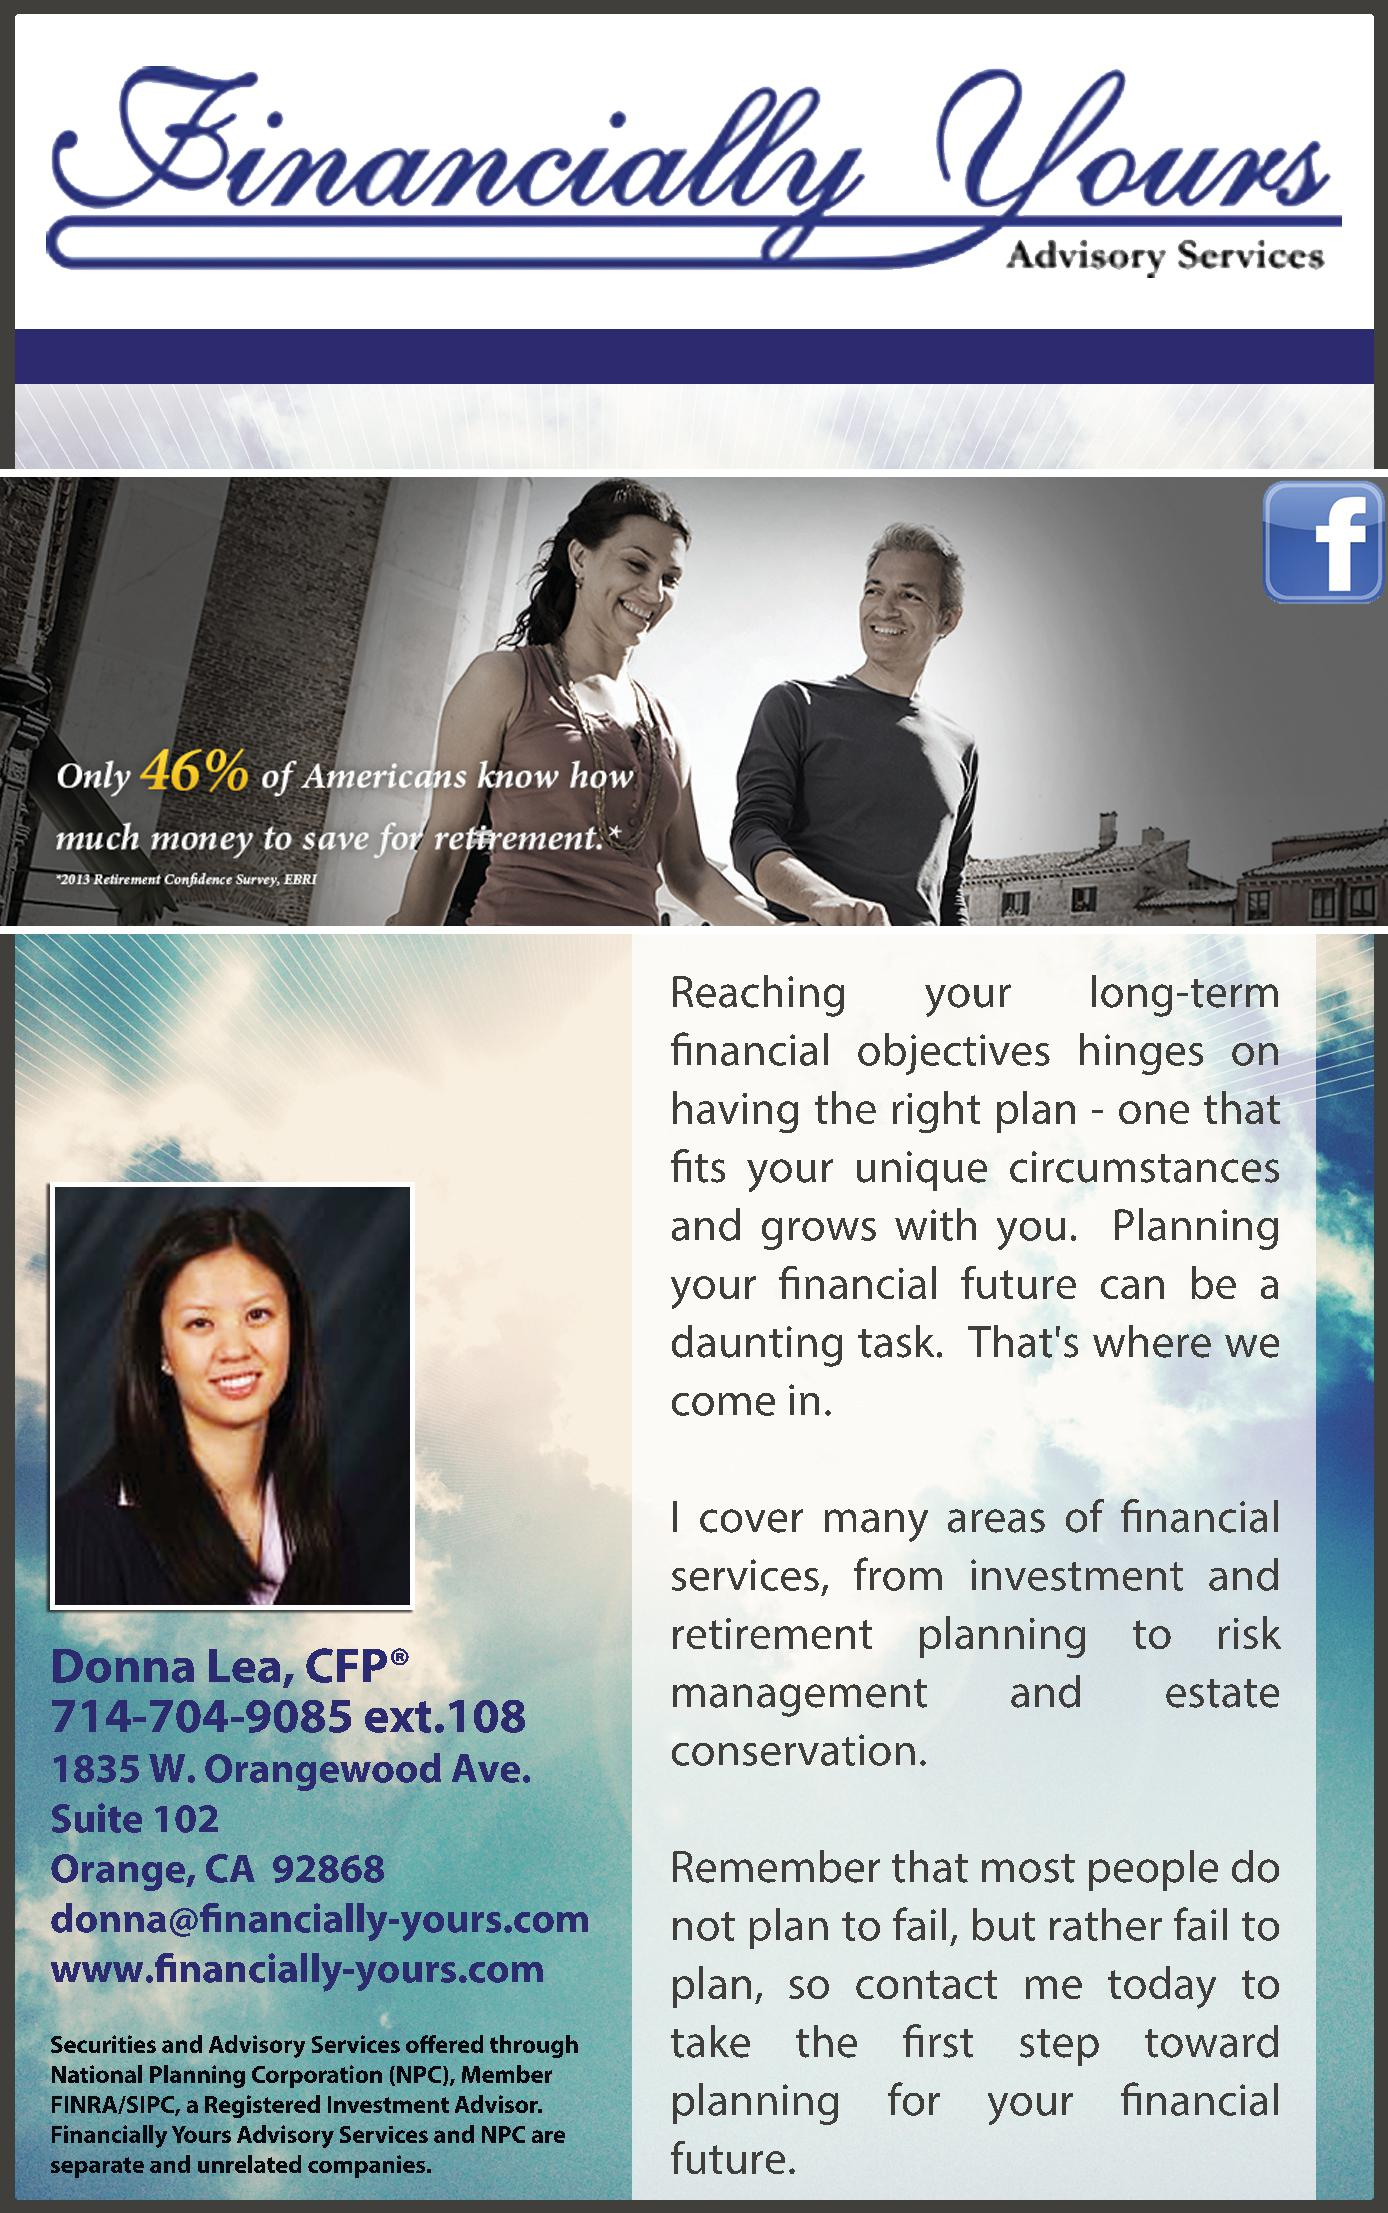 Financially Yours Advisory Services